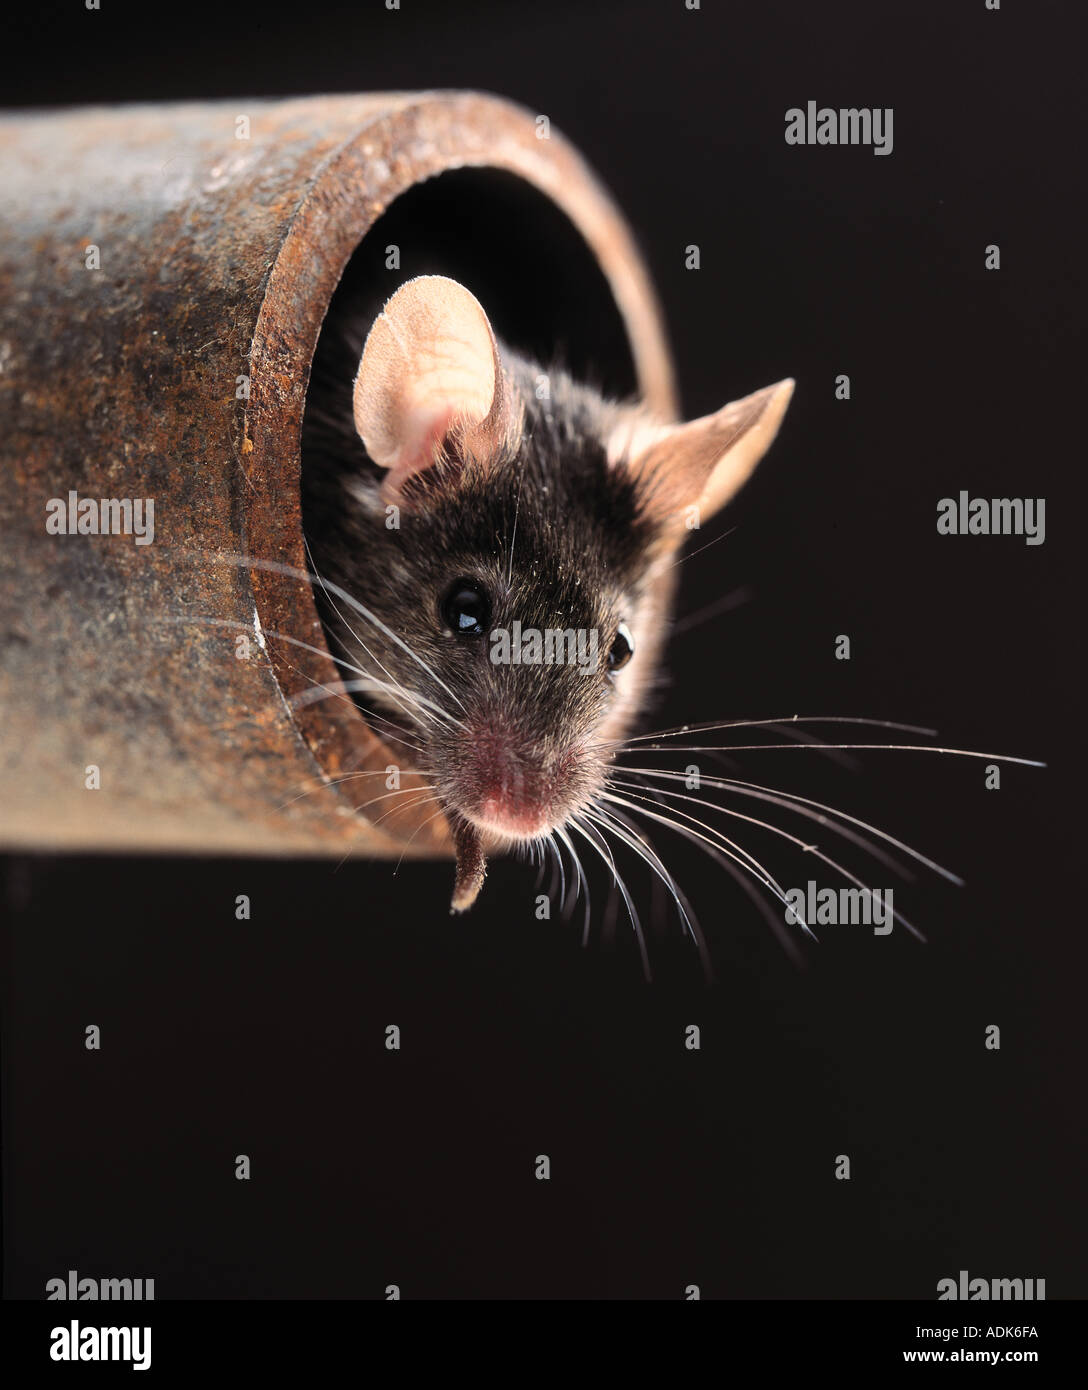 house mouse looking out from a pipe / Mus musculus - Stock Image